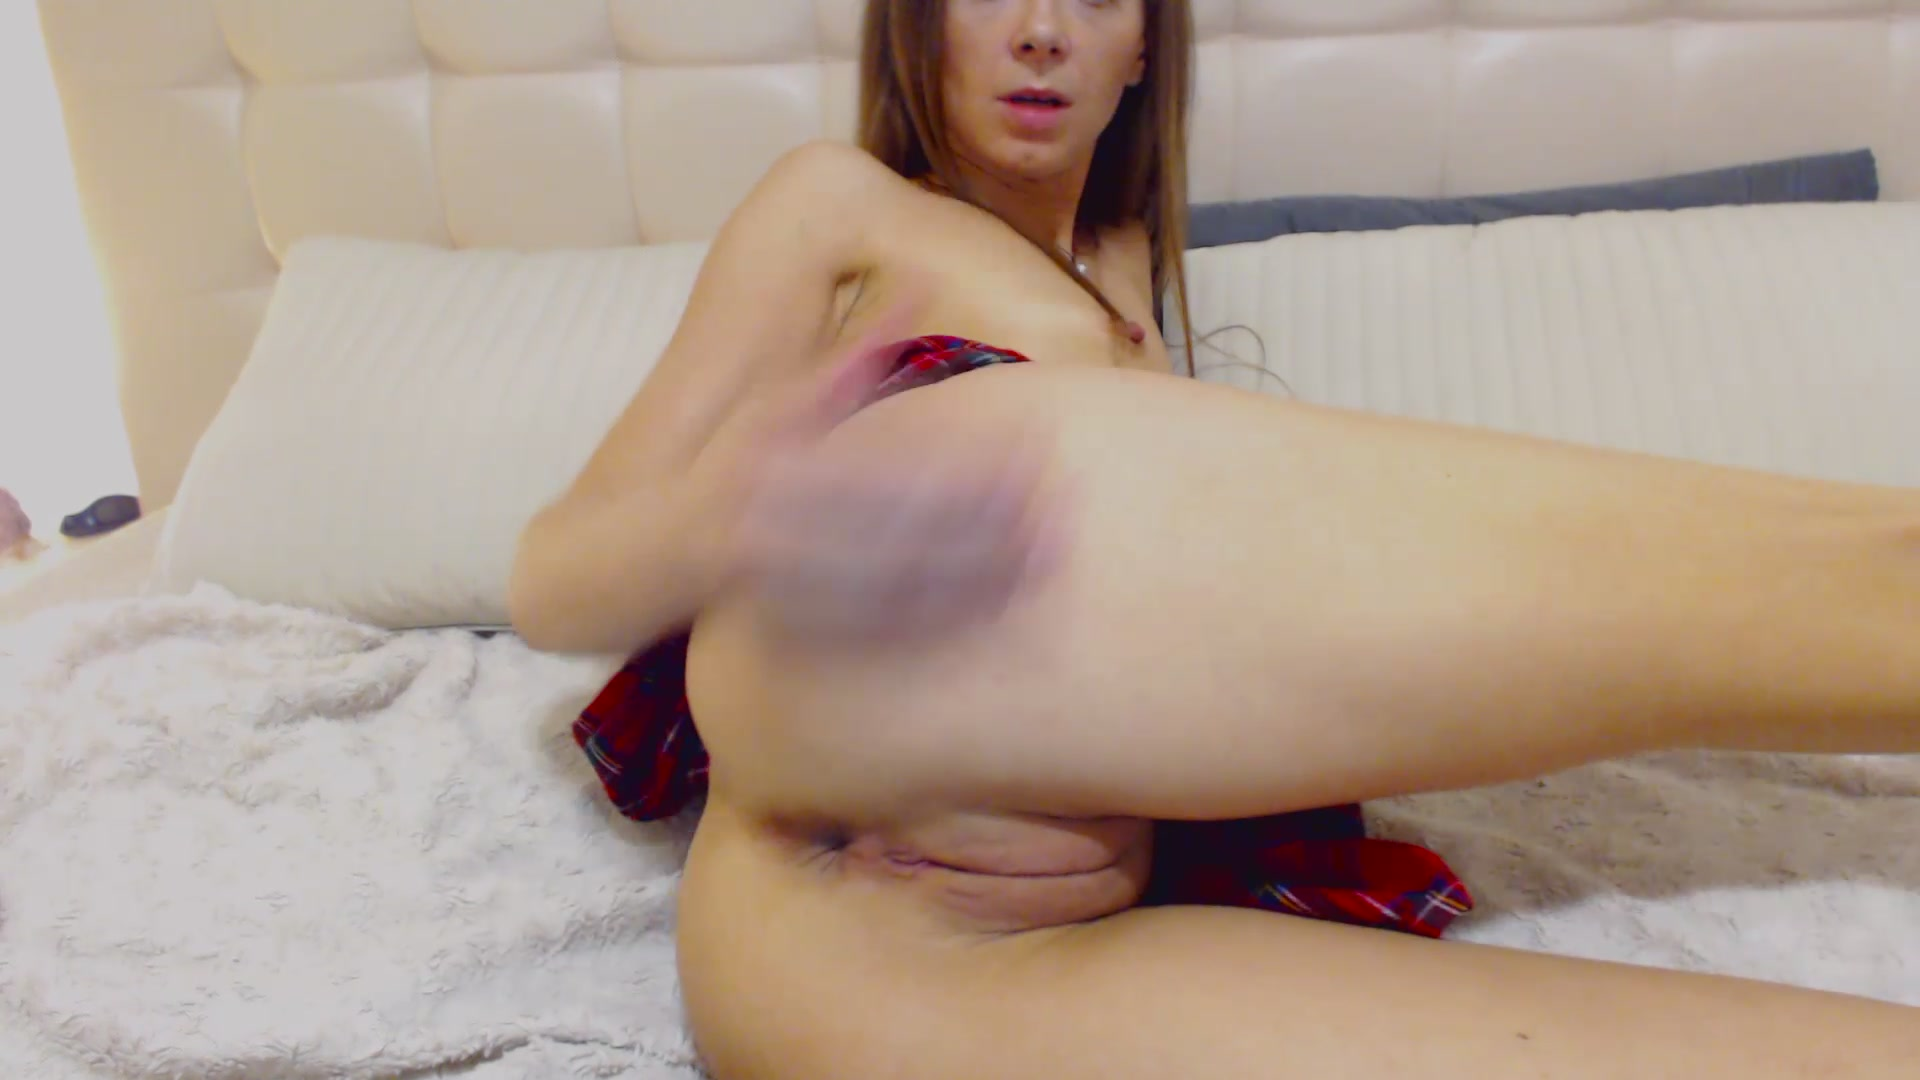 miss mia - anal fucking with ass fuck instruct - camvideos.tv